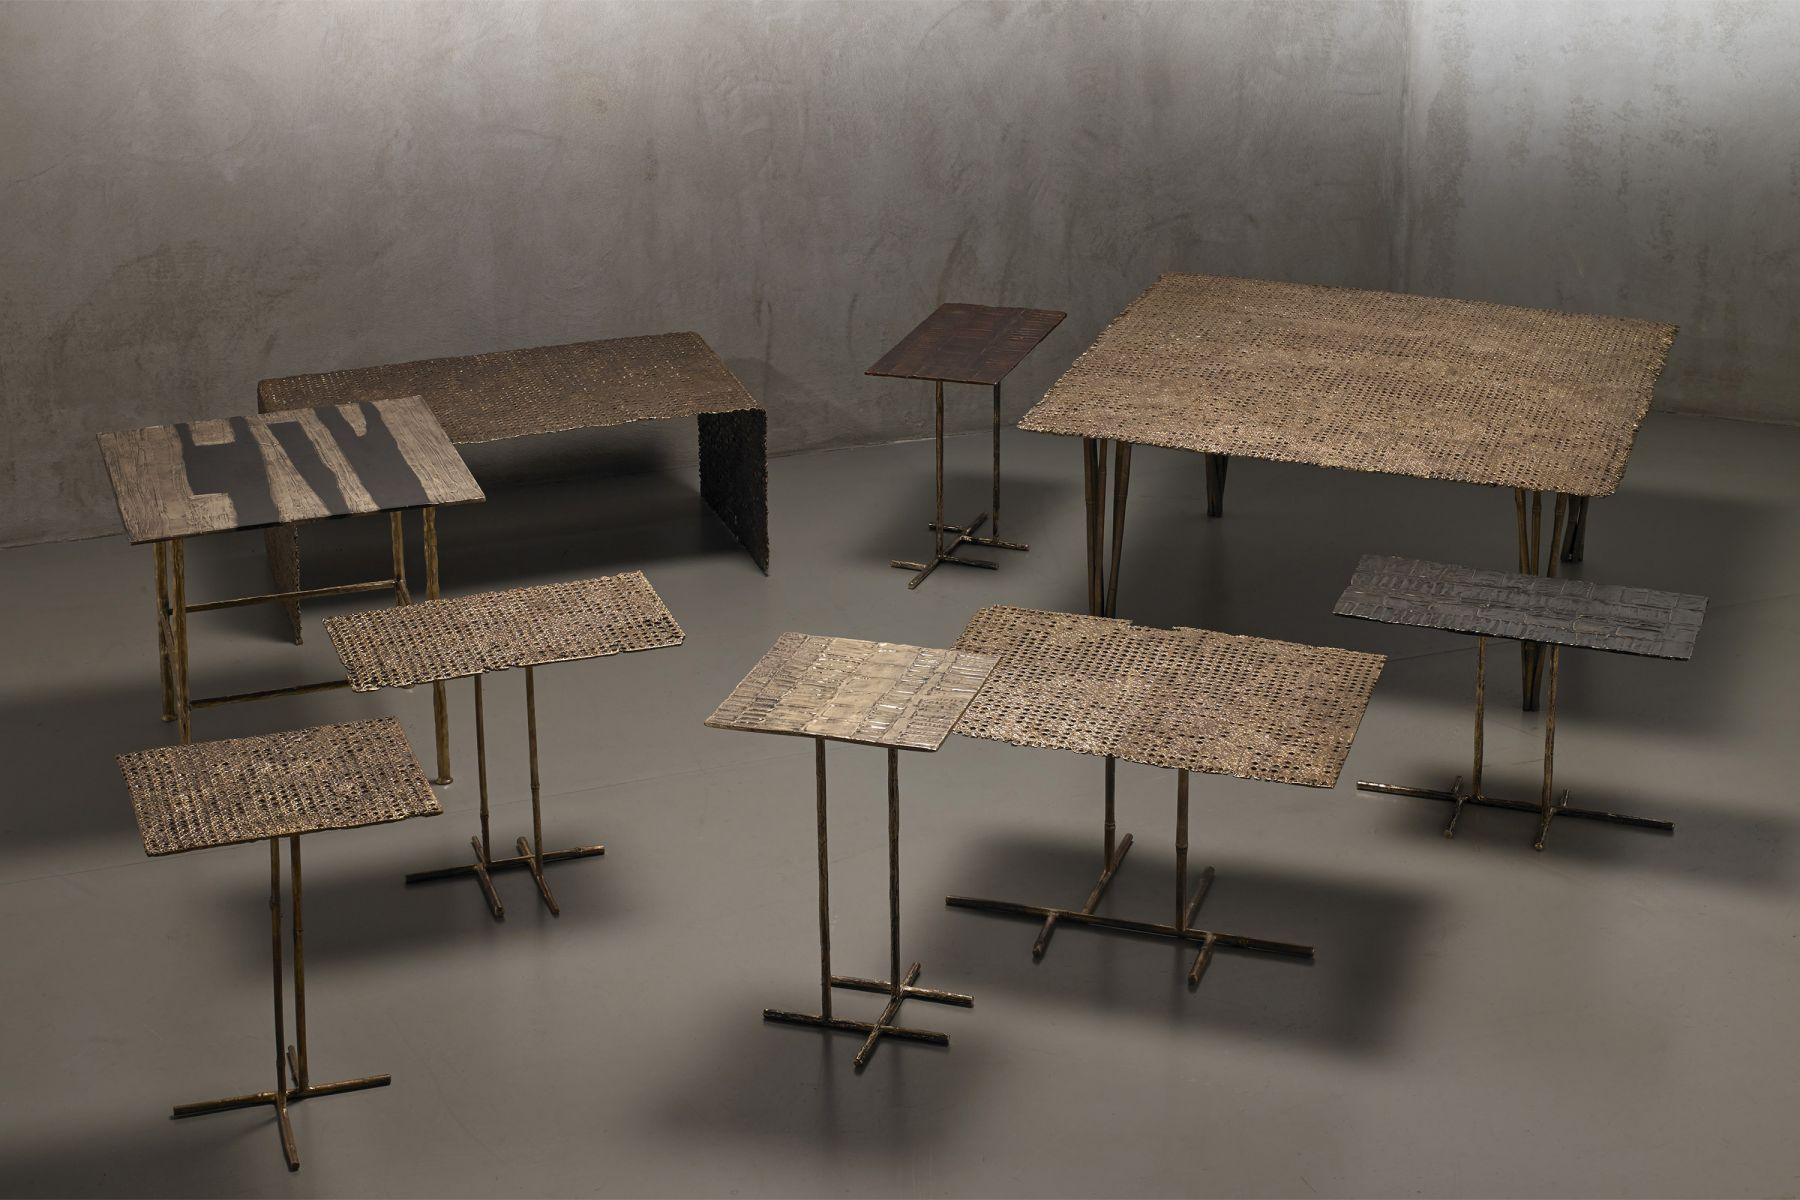 'Paglia di Vienna' collection low tables Osanna Visconti pic-4